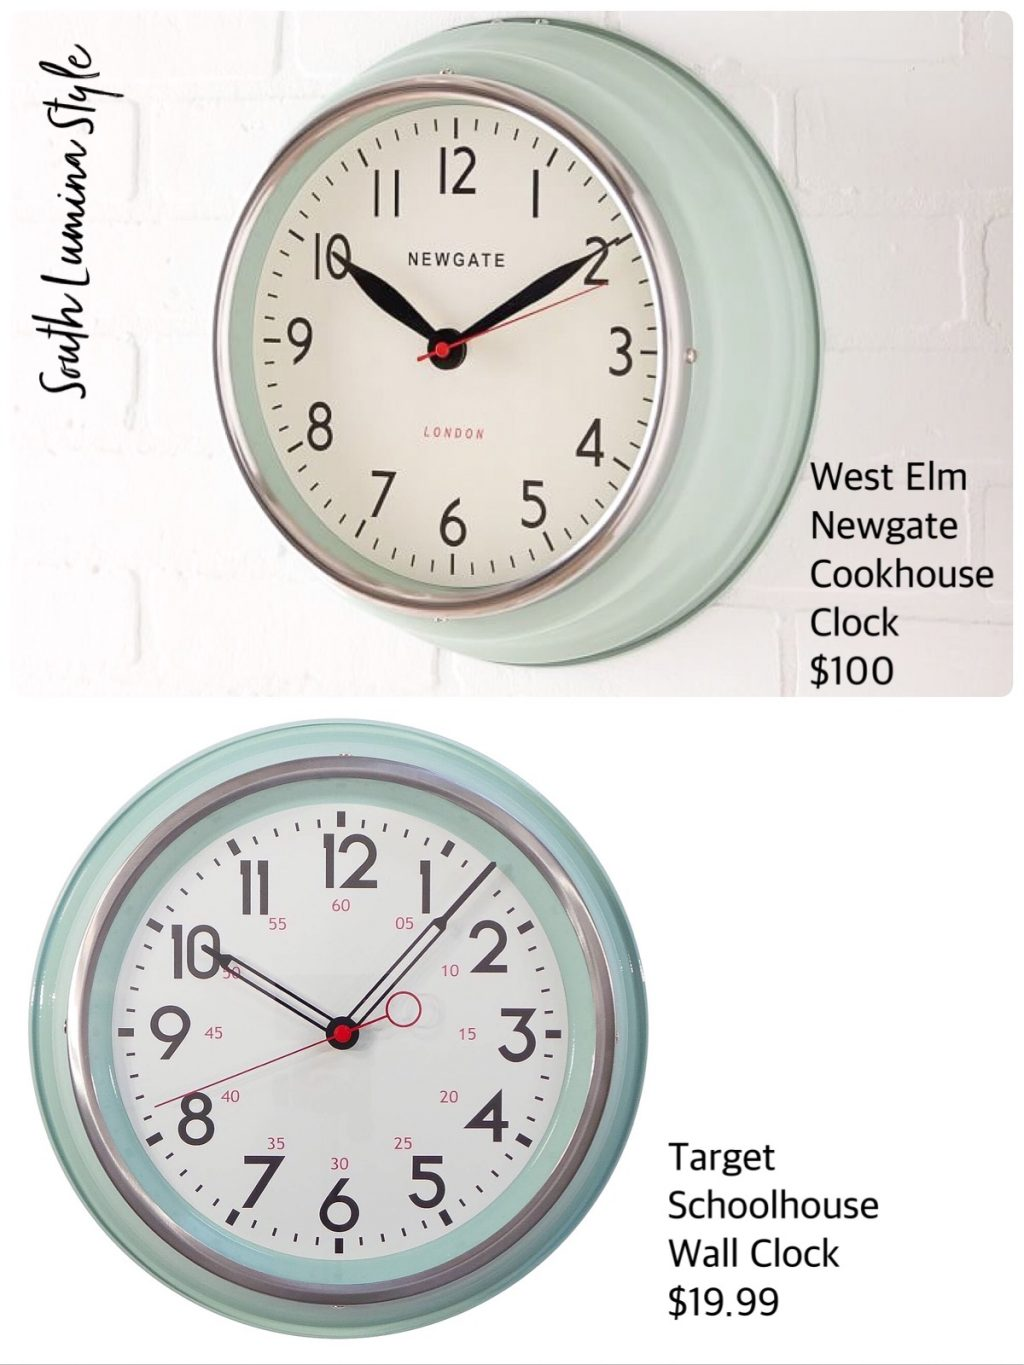 Schoolhouse Wall Clocks